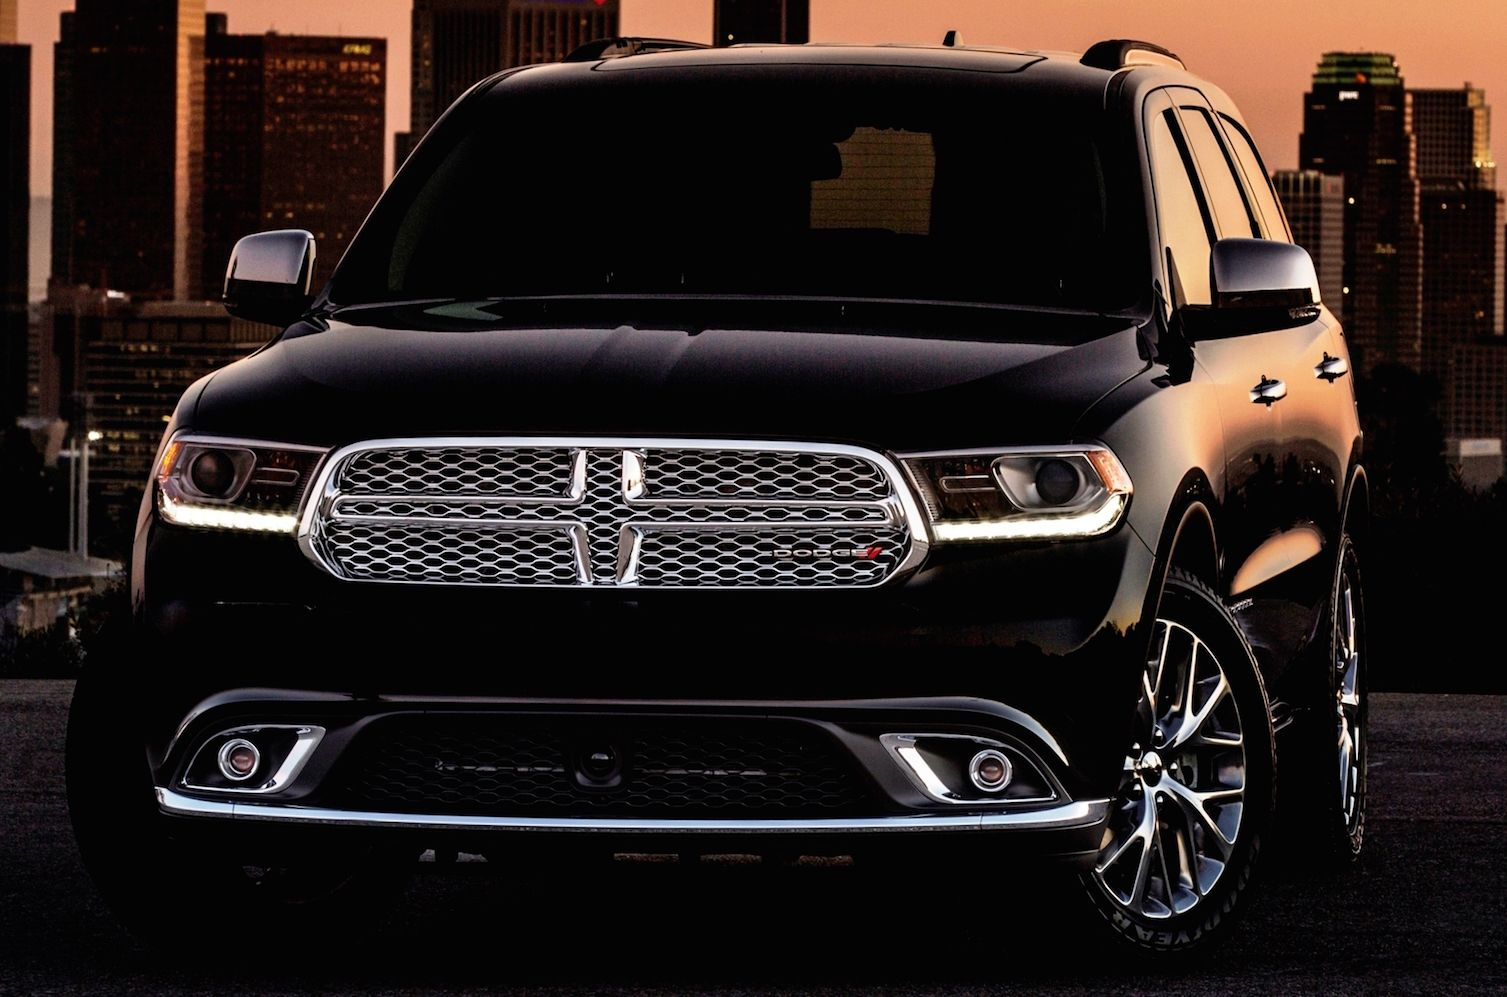 2016 dodge durango rt 24 lexani wheels css 15 gloss black machine tips audiocityusa com suv and crossover vehicles pinterest 2016 dodge durango